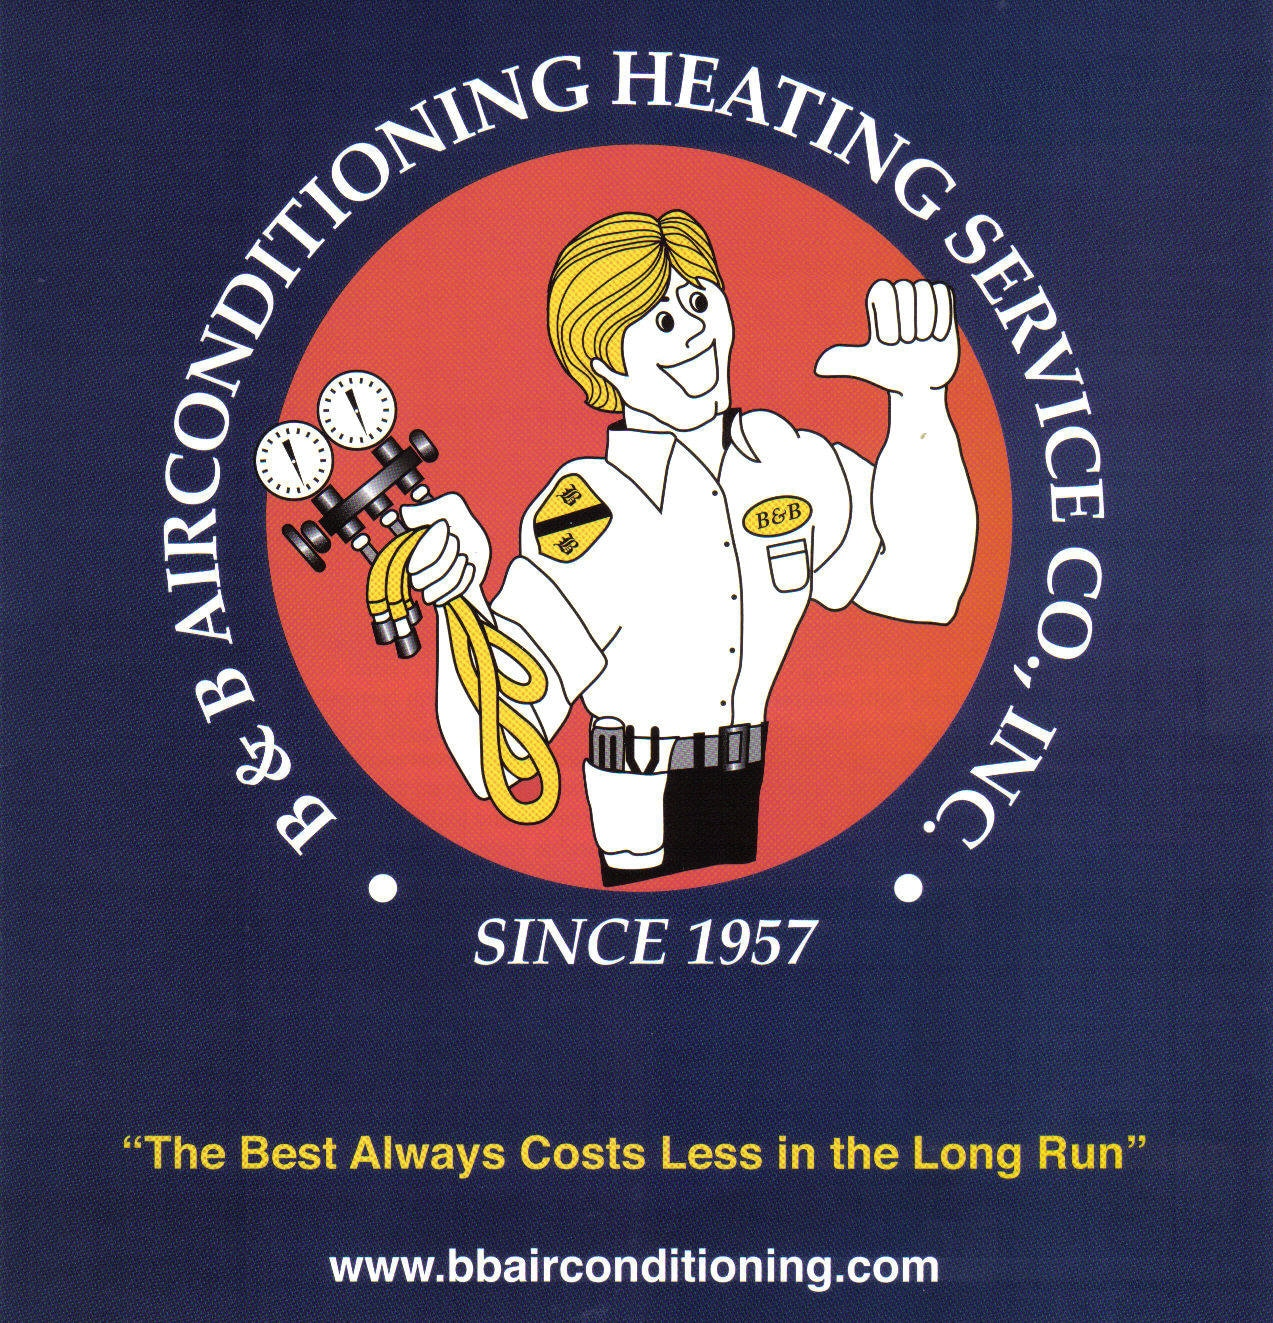 B&B AIR CONDITIONING AND HEATING SERVICE COMPANY